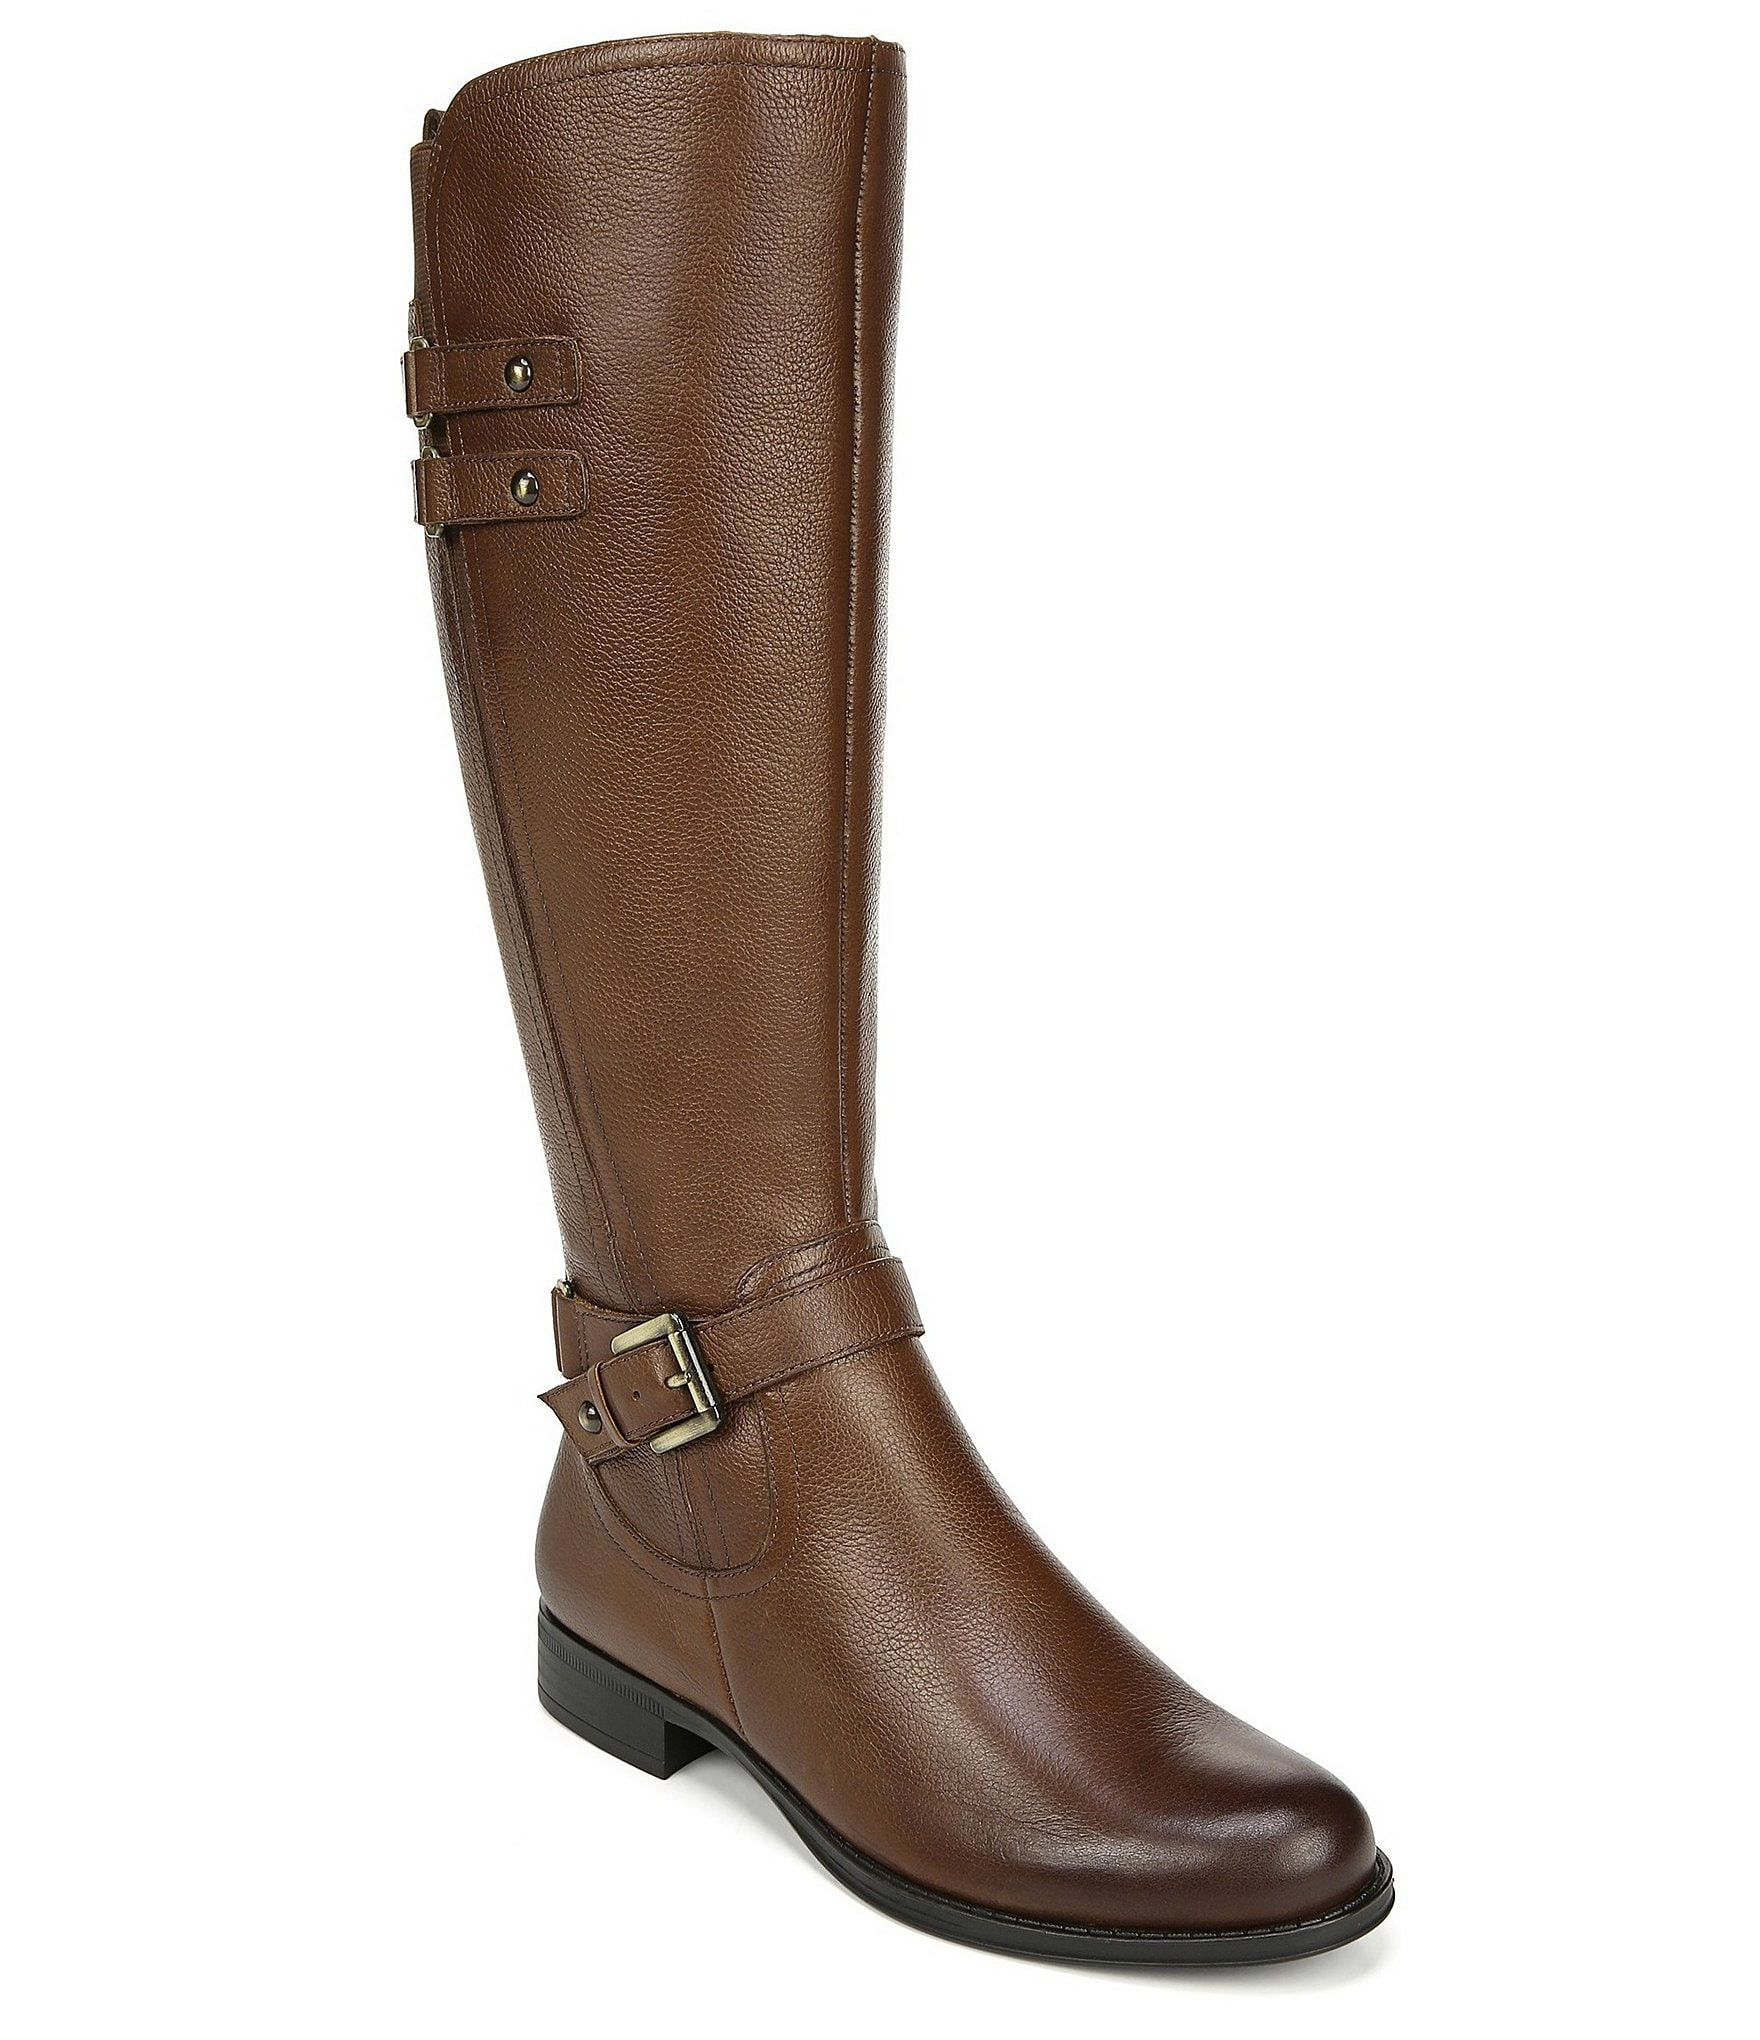 27720e7f53b Naturalizer Jackie Tall Leather Riding Boots